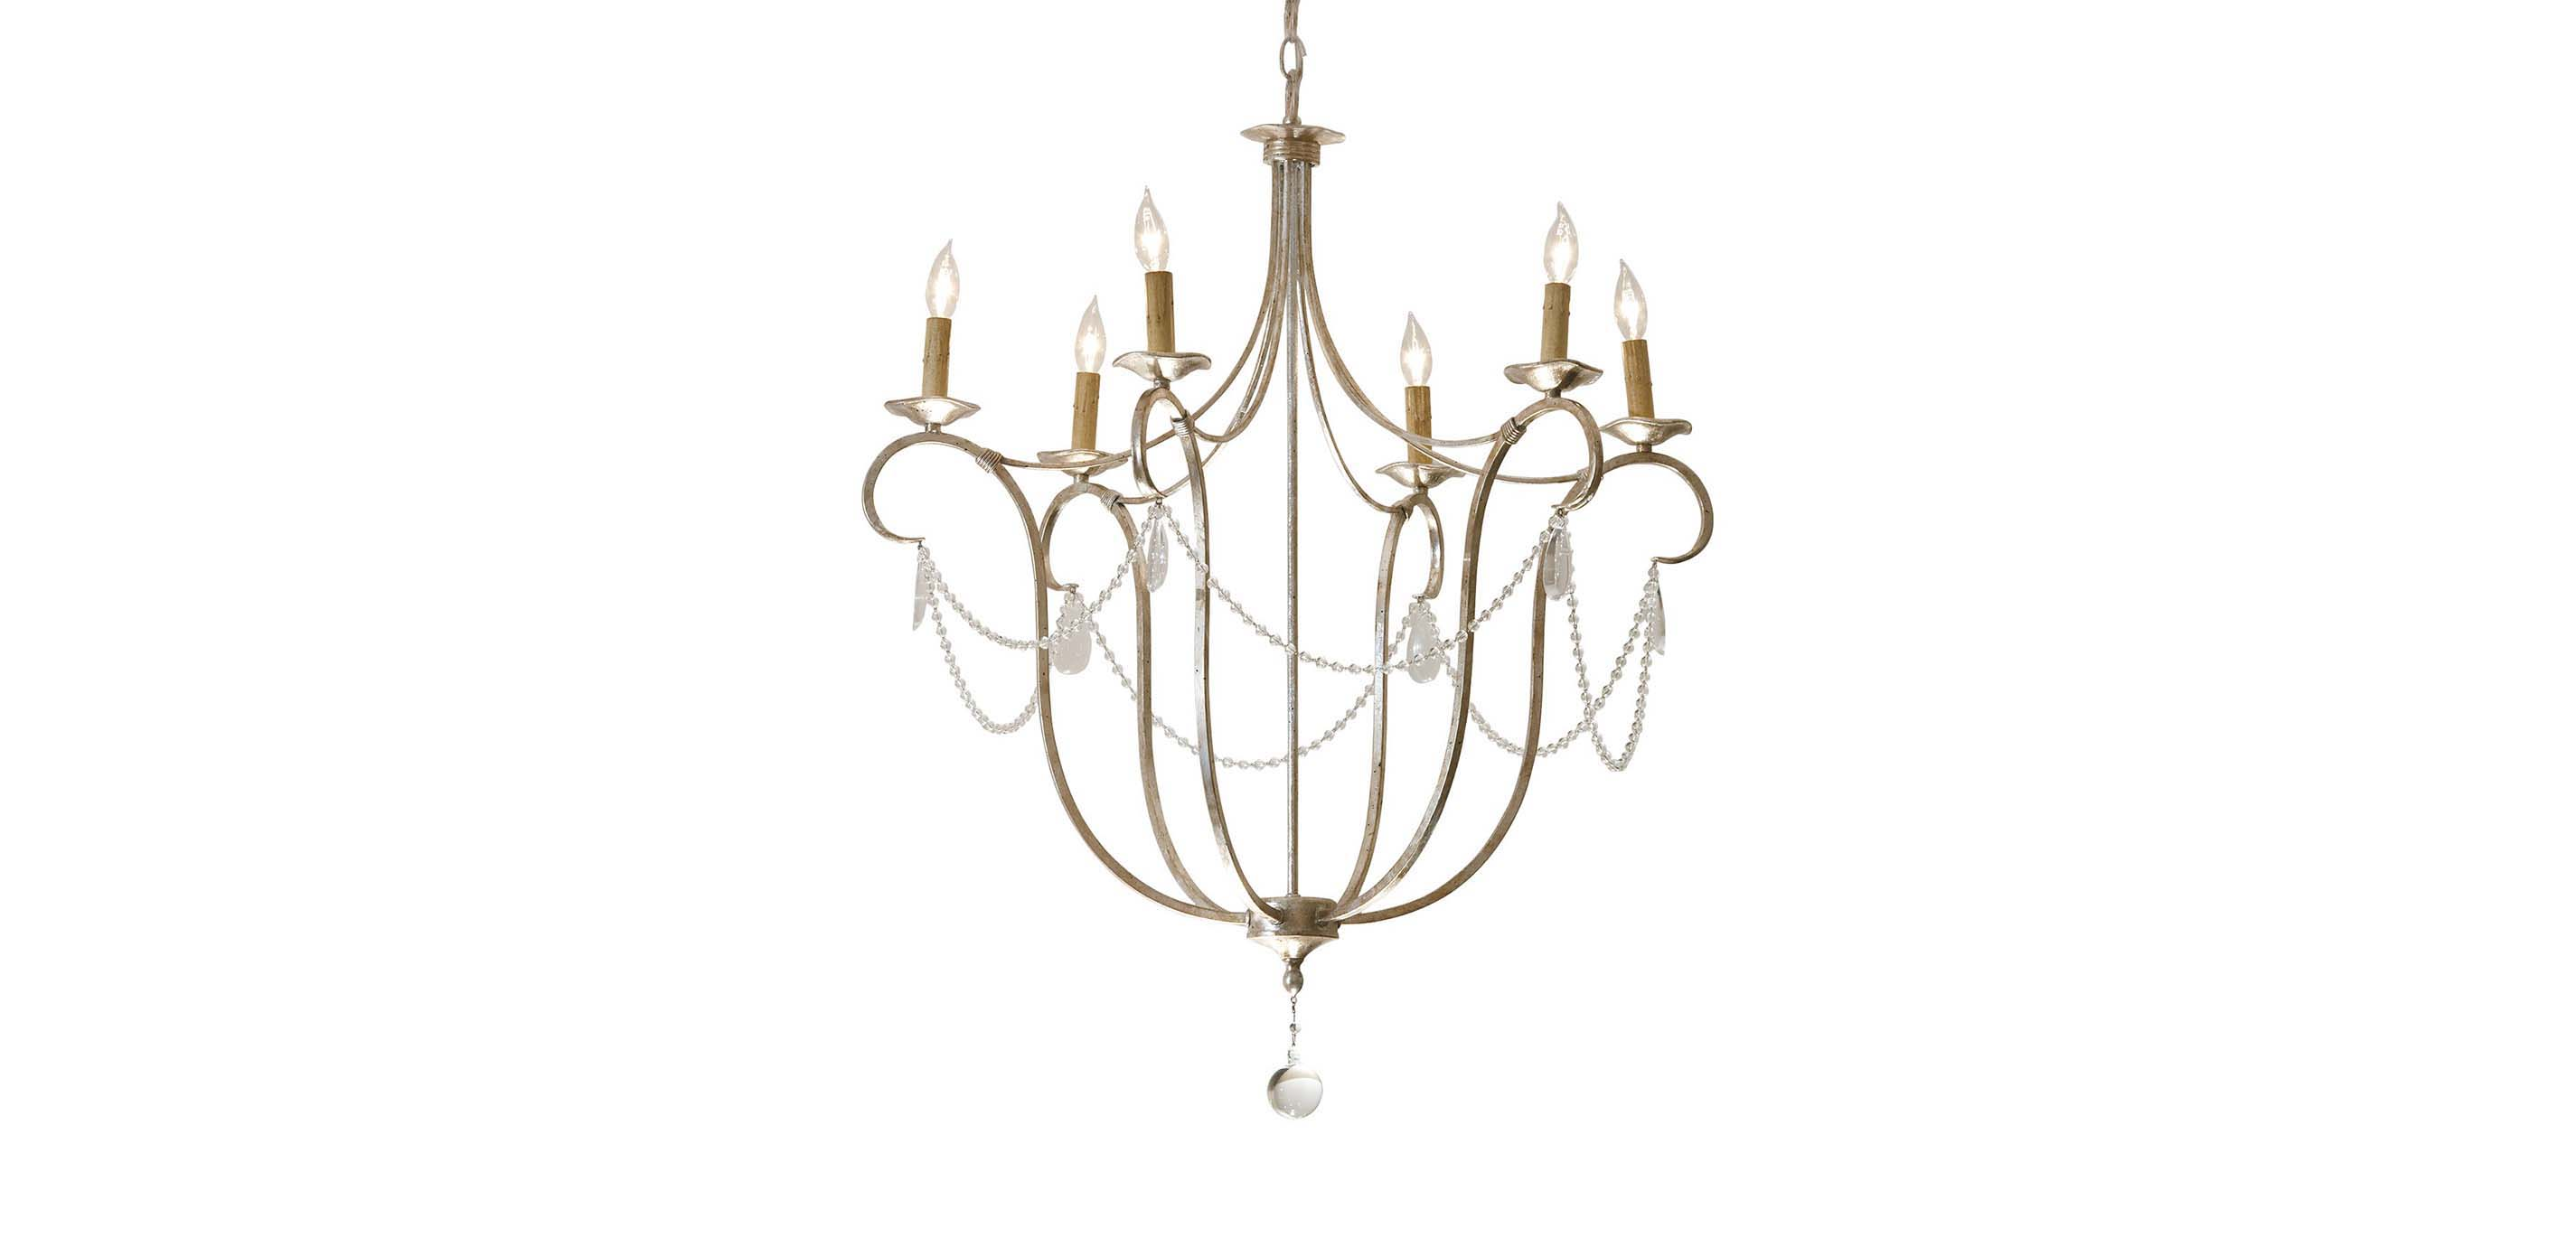 Cali aged silver chandelier chandeliers ethan allen images null mozeypictures Images